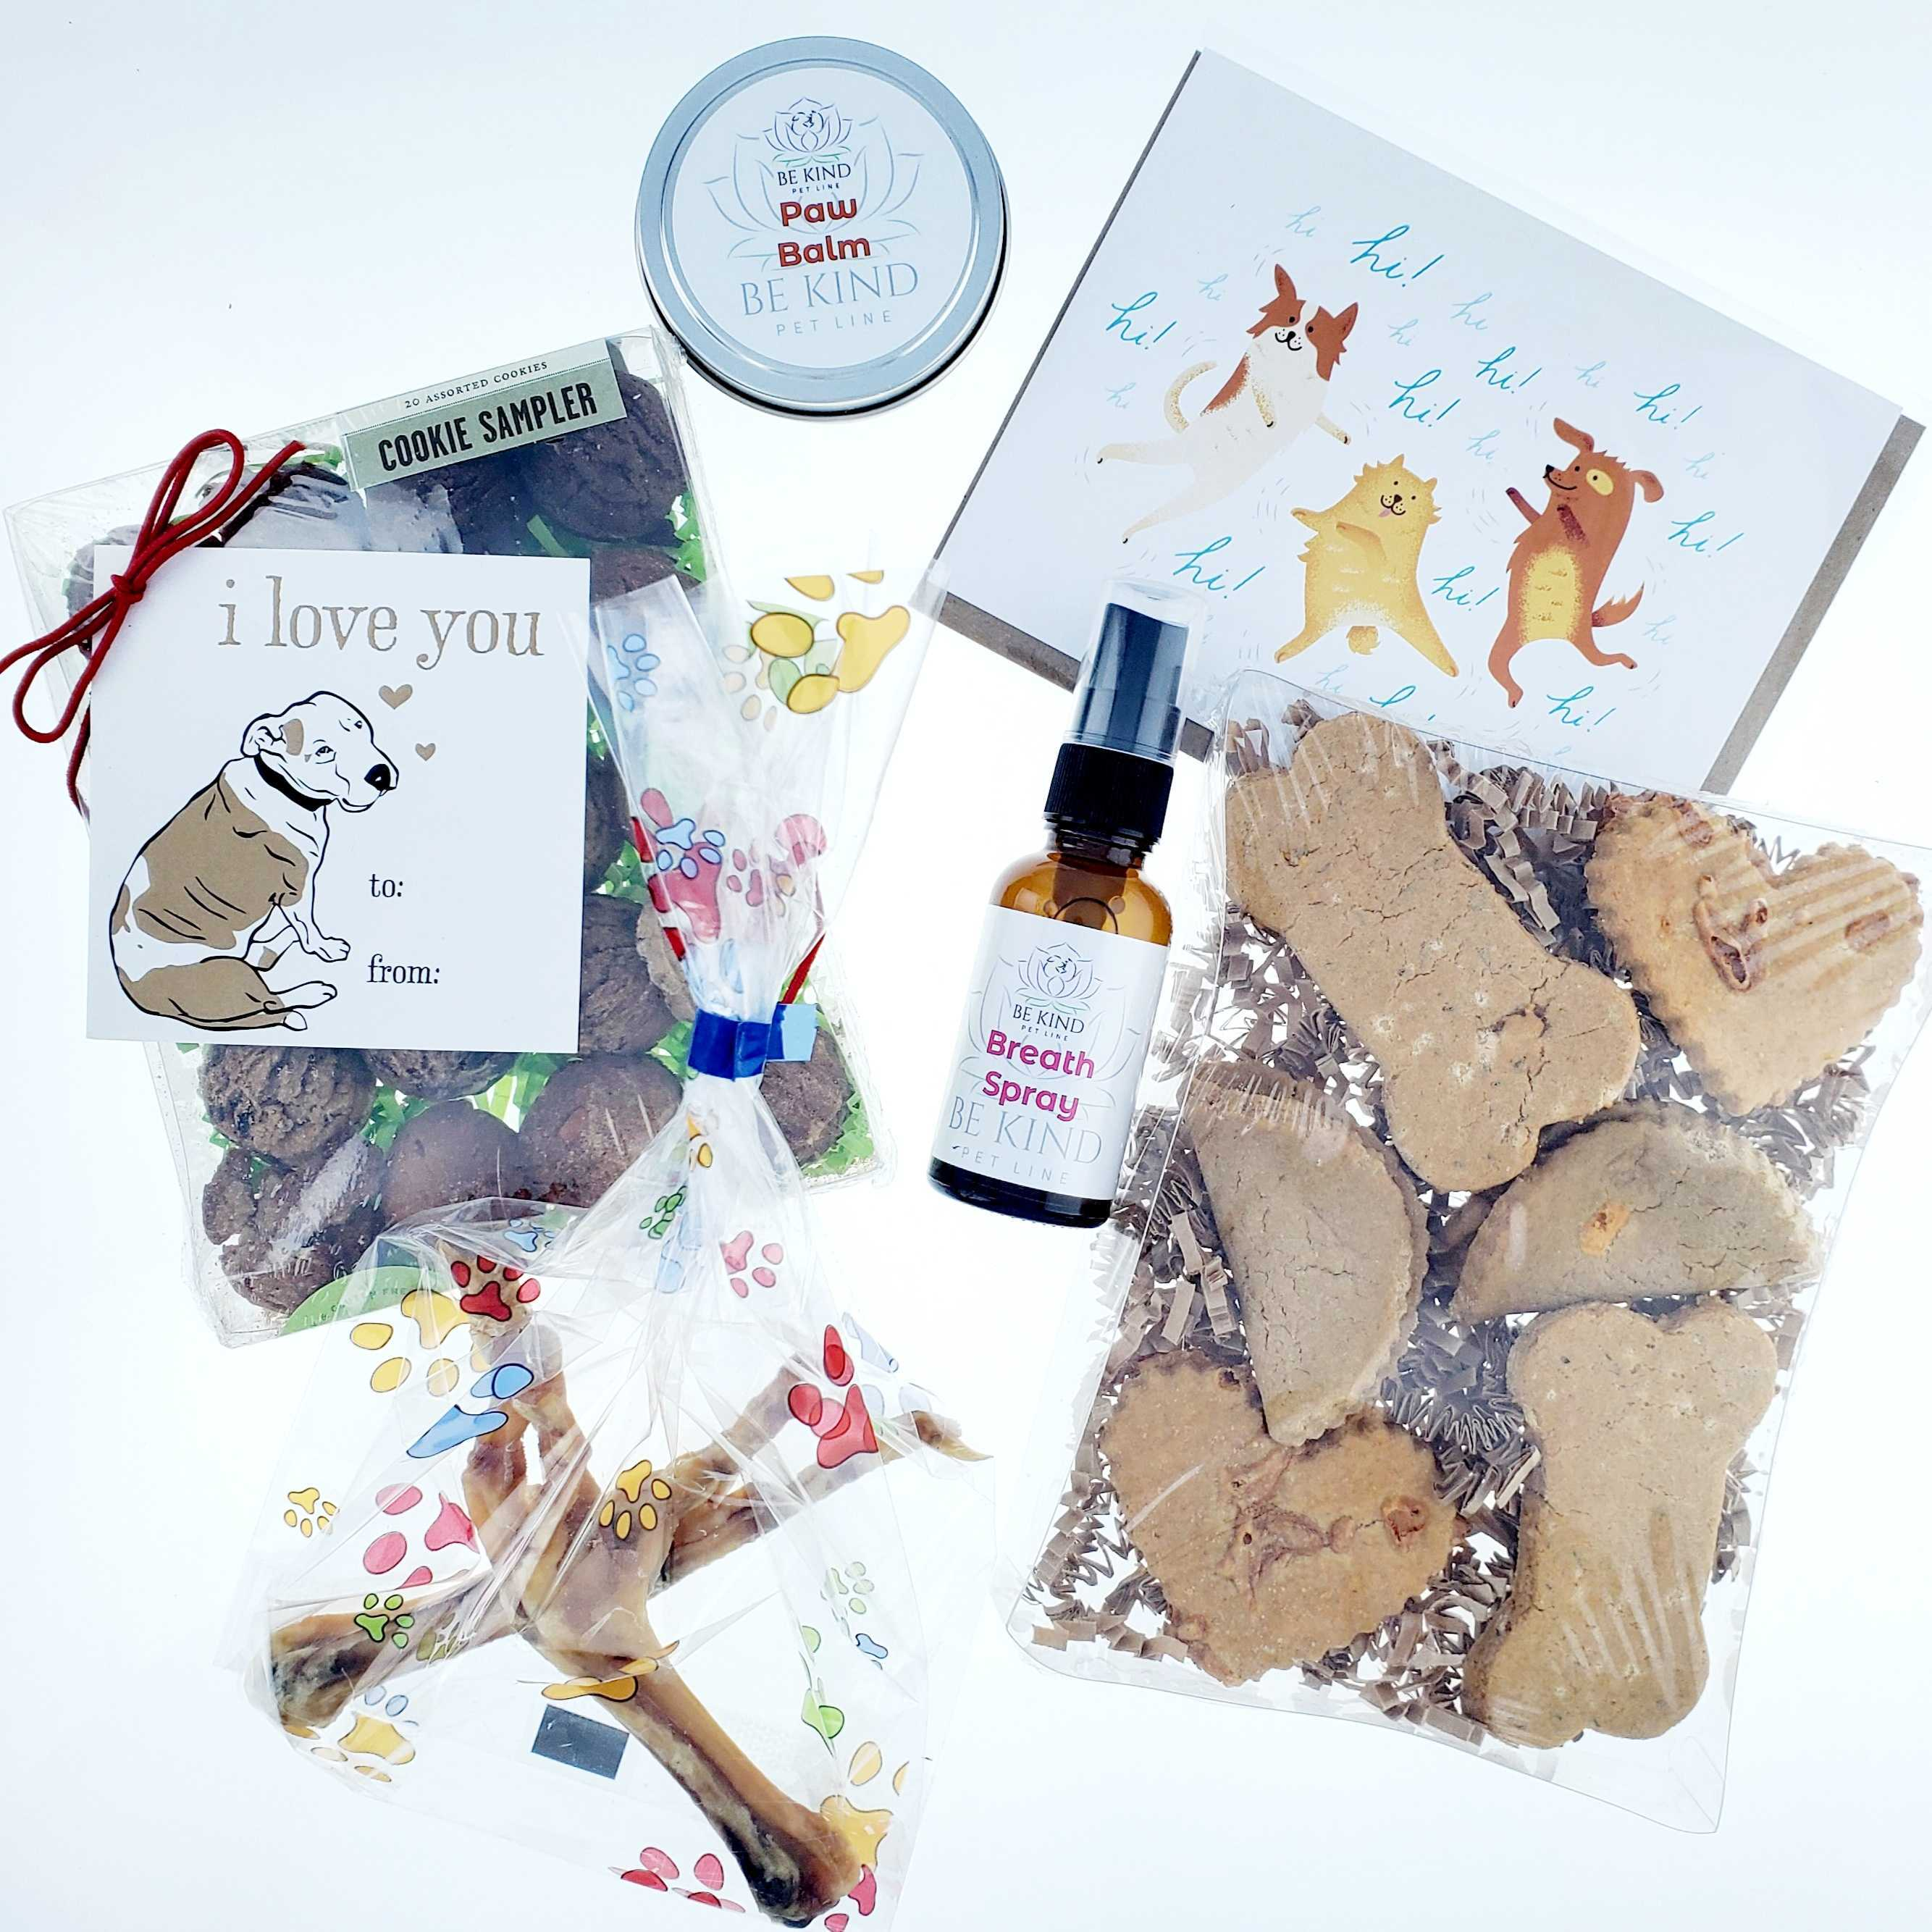 Cheery Dog Box I LOVE YOU BOX Treats + Goodies for Dogs, Size: Small image 2